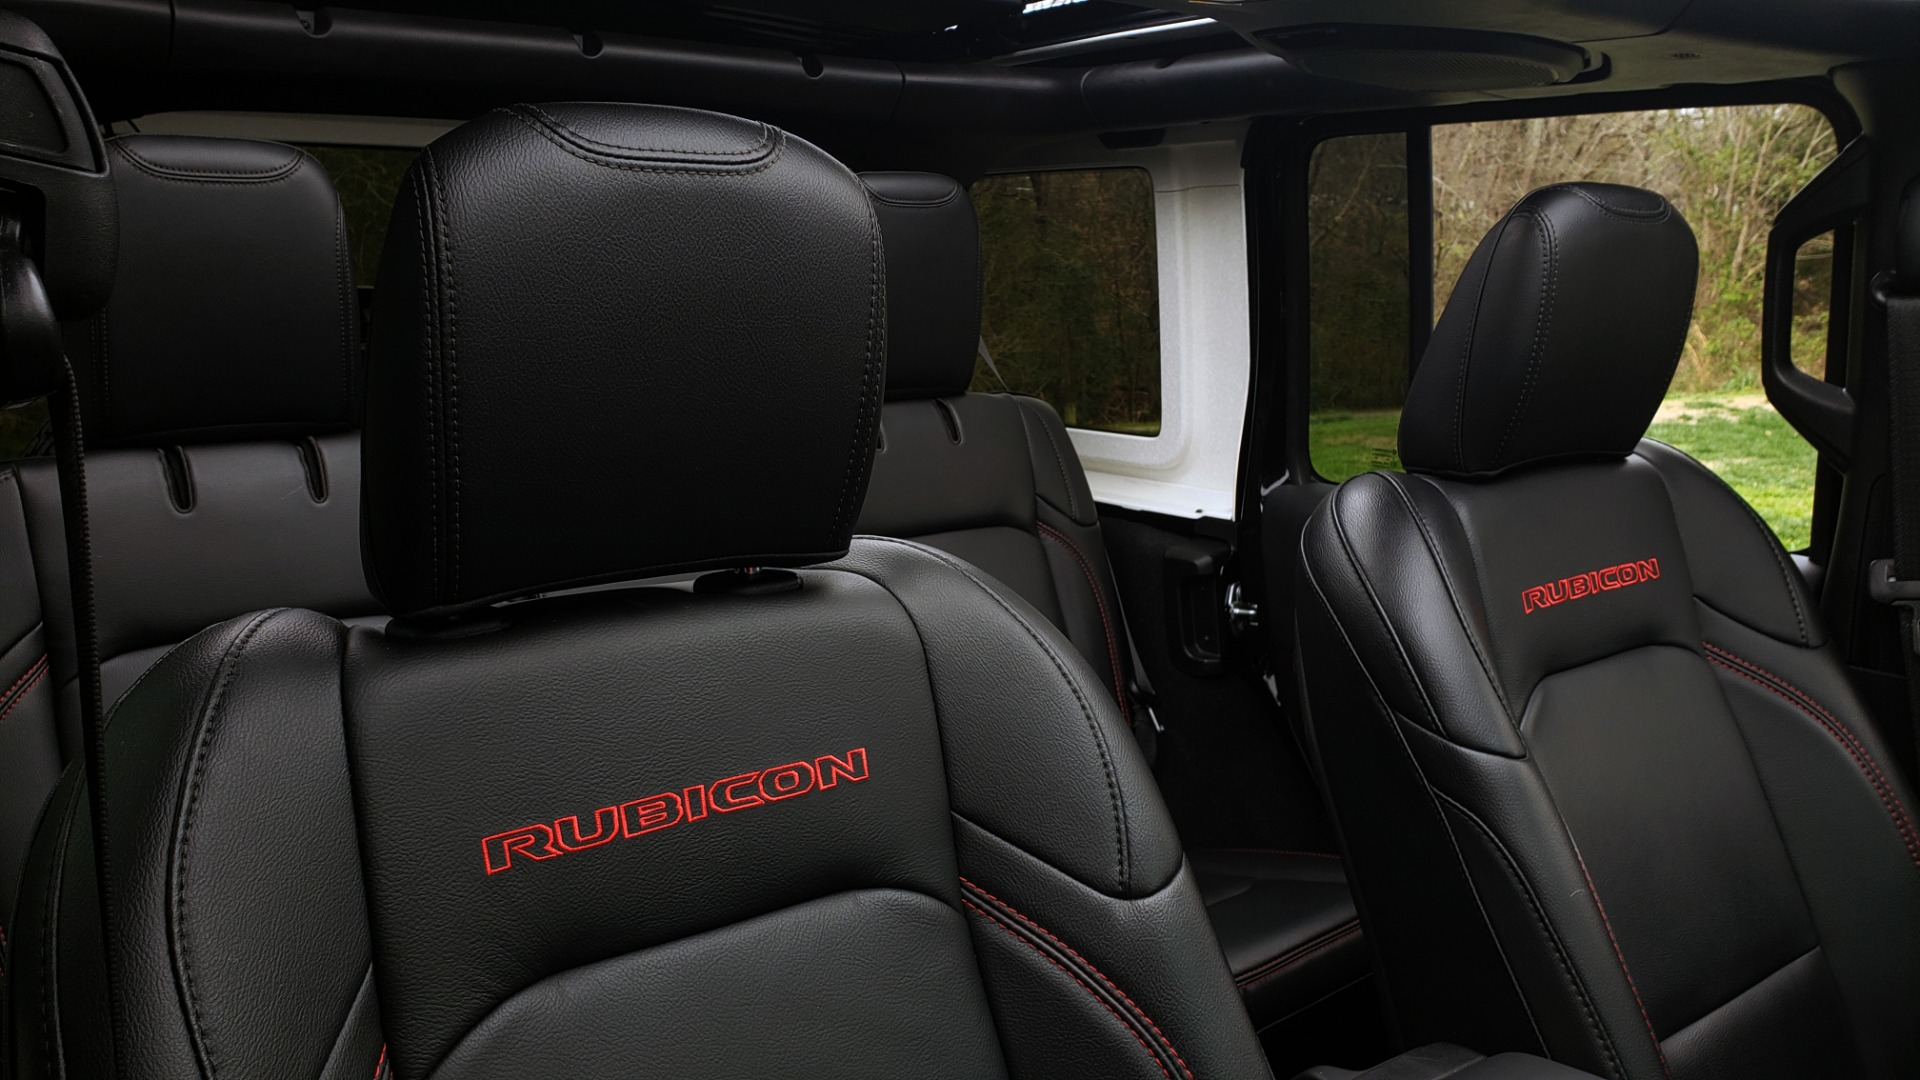 Used 2019 Jeep WRANGLER UNLIMITED RUBICON 4WD / V6 / 8-SPD AUTO / NAV / PWR TOP / REARVIEW for sale Sold at Formula Imports in Charlotte NC 28227 91